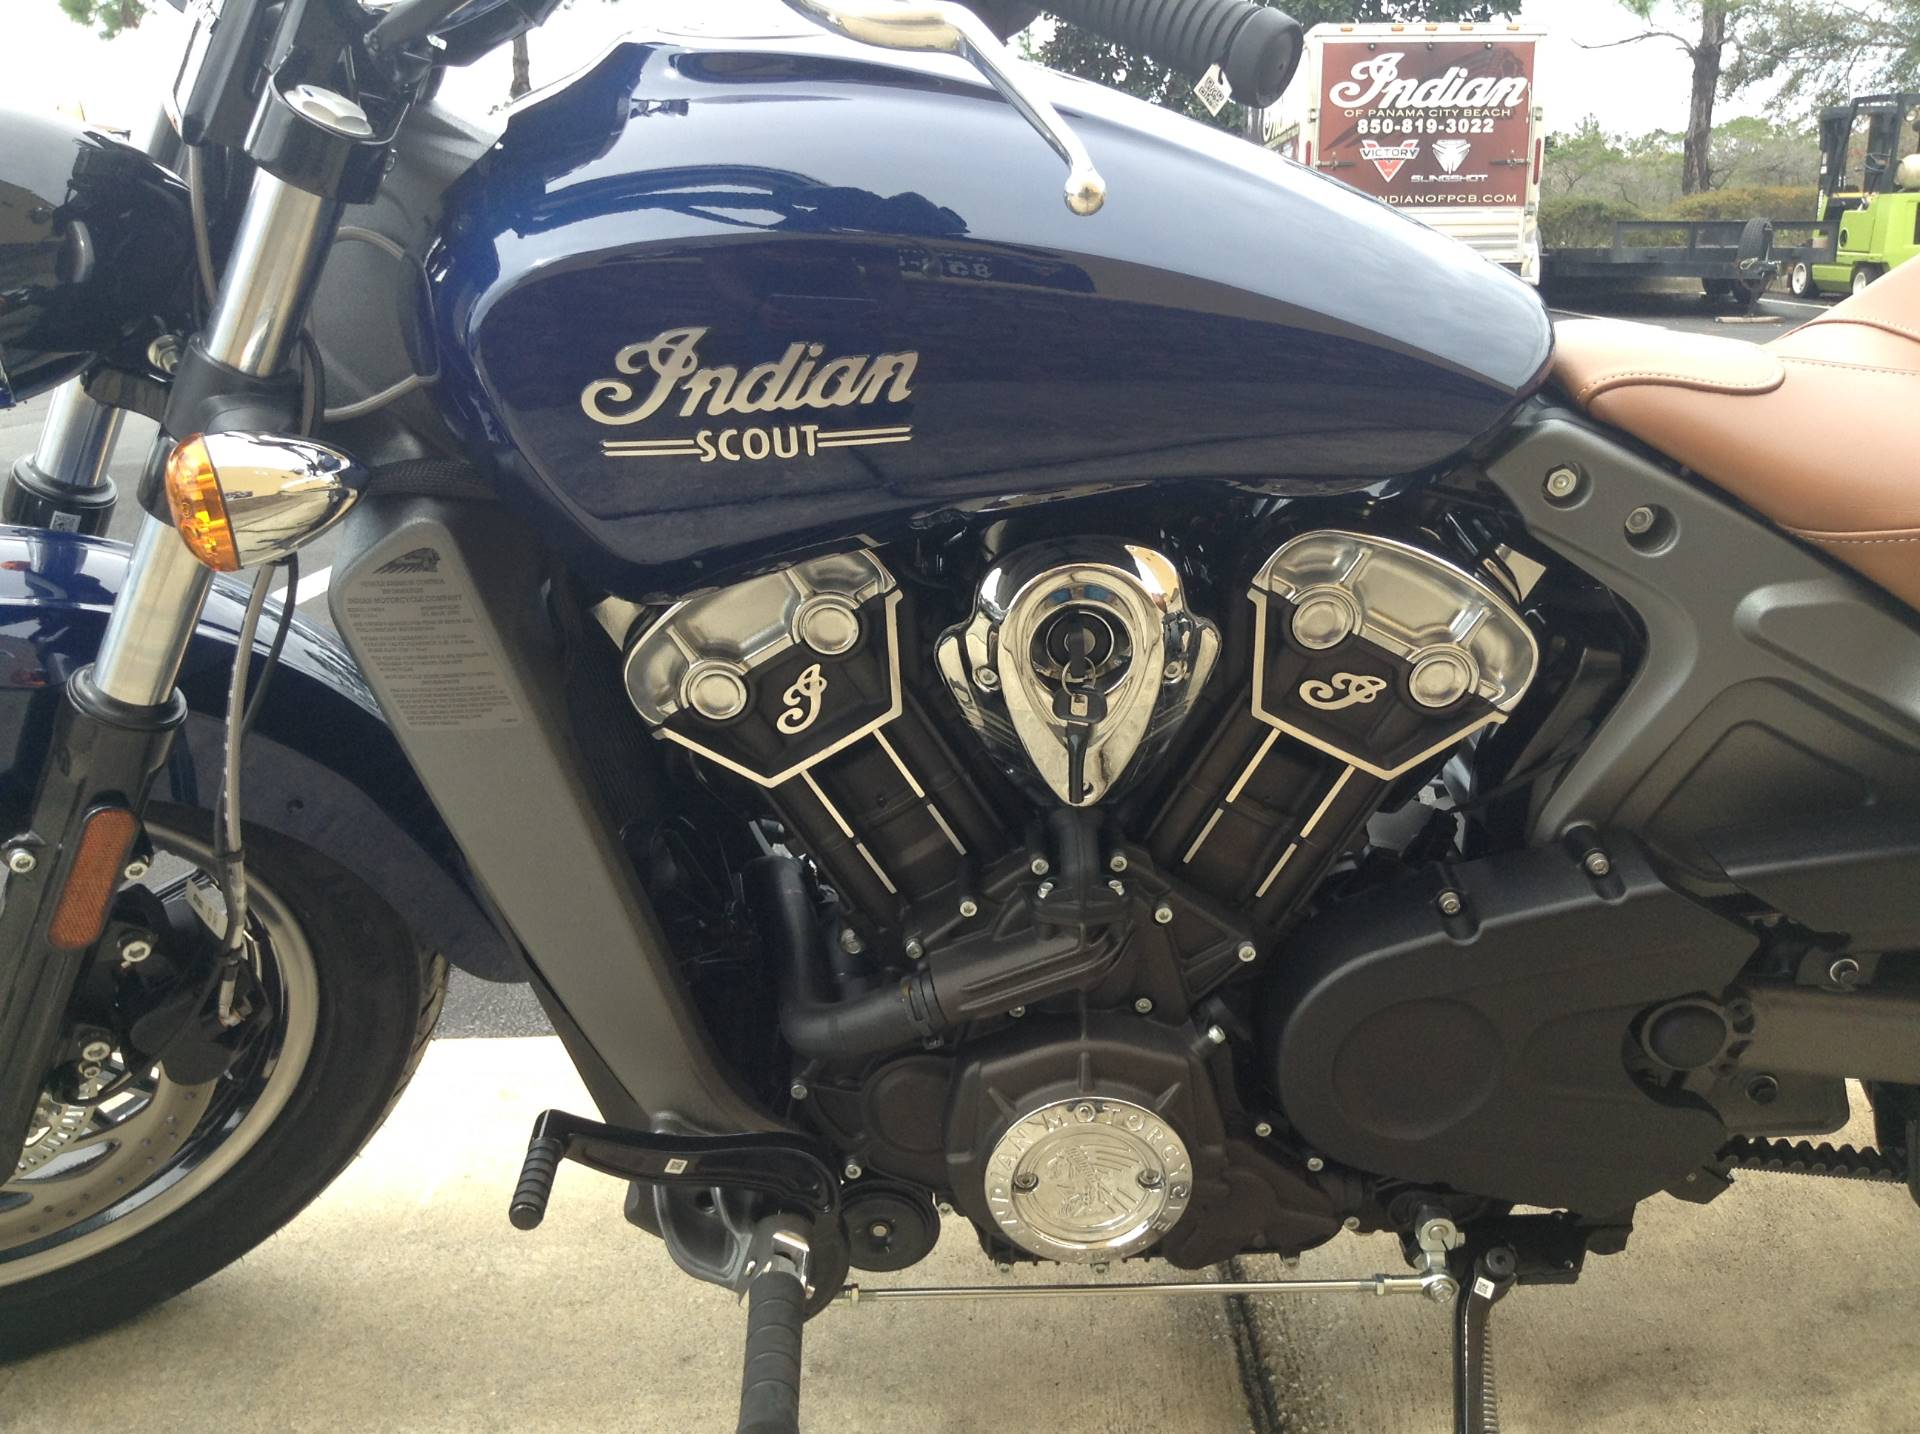 2019 Indian SCOUT ABS in Panama City Beach, Florida - Photo 12